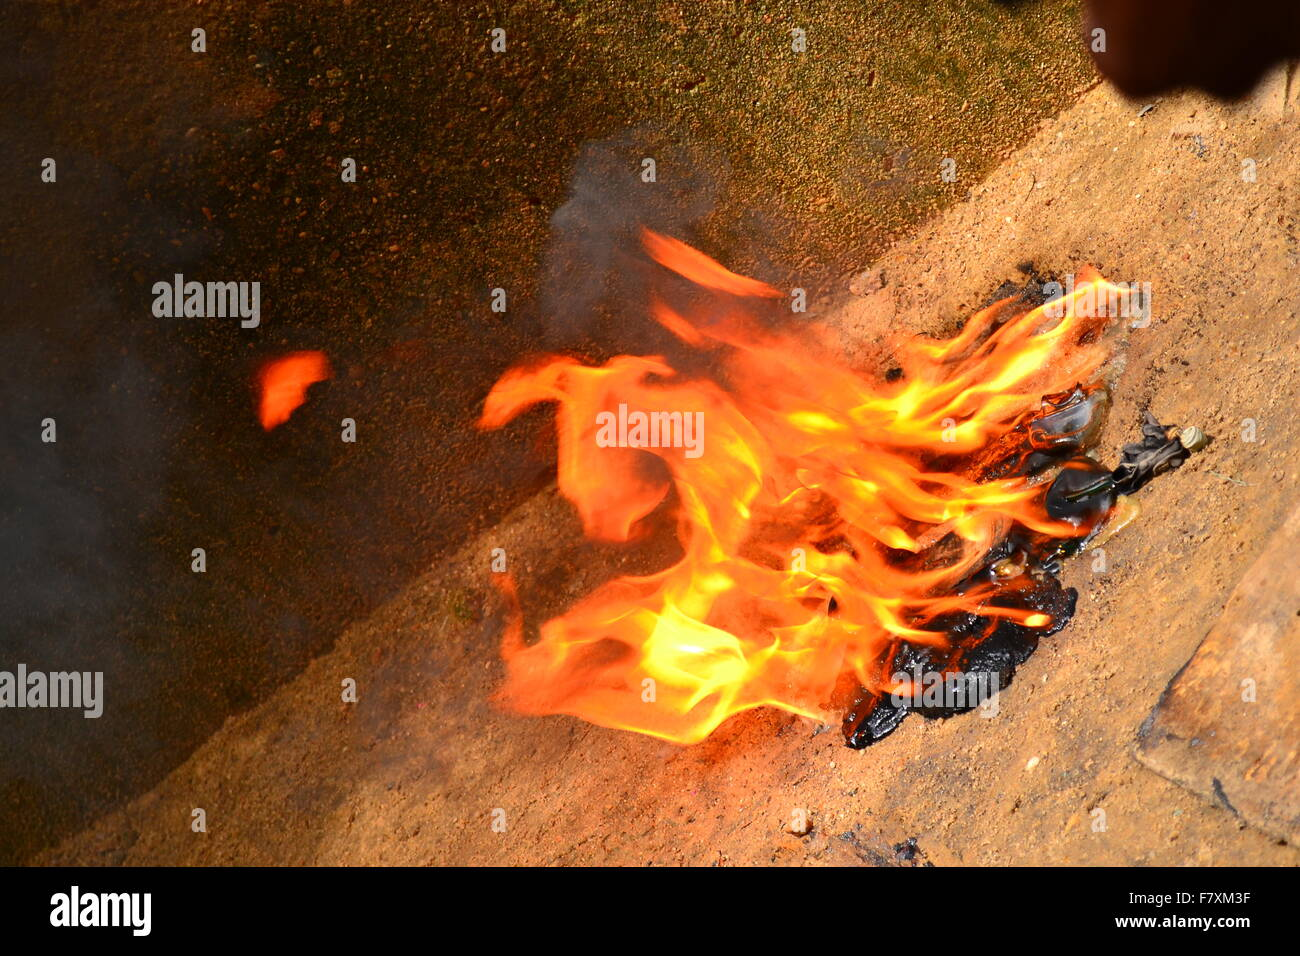 Fire in full combustion - Stock Image